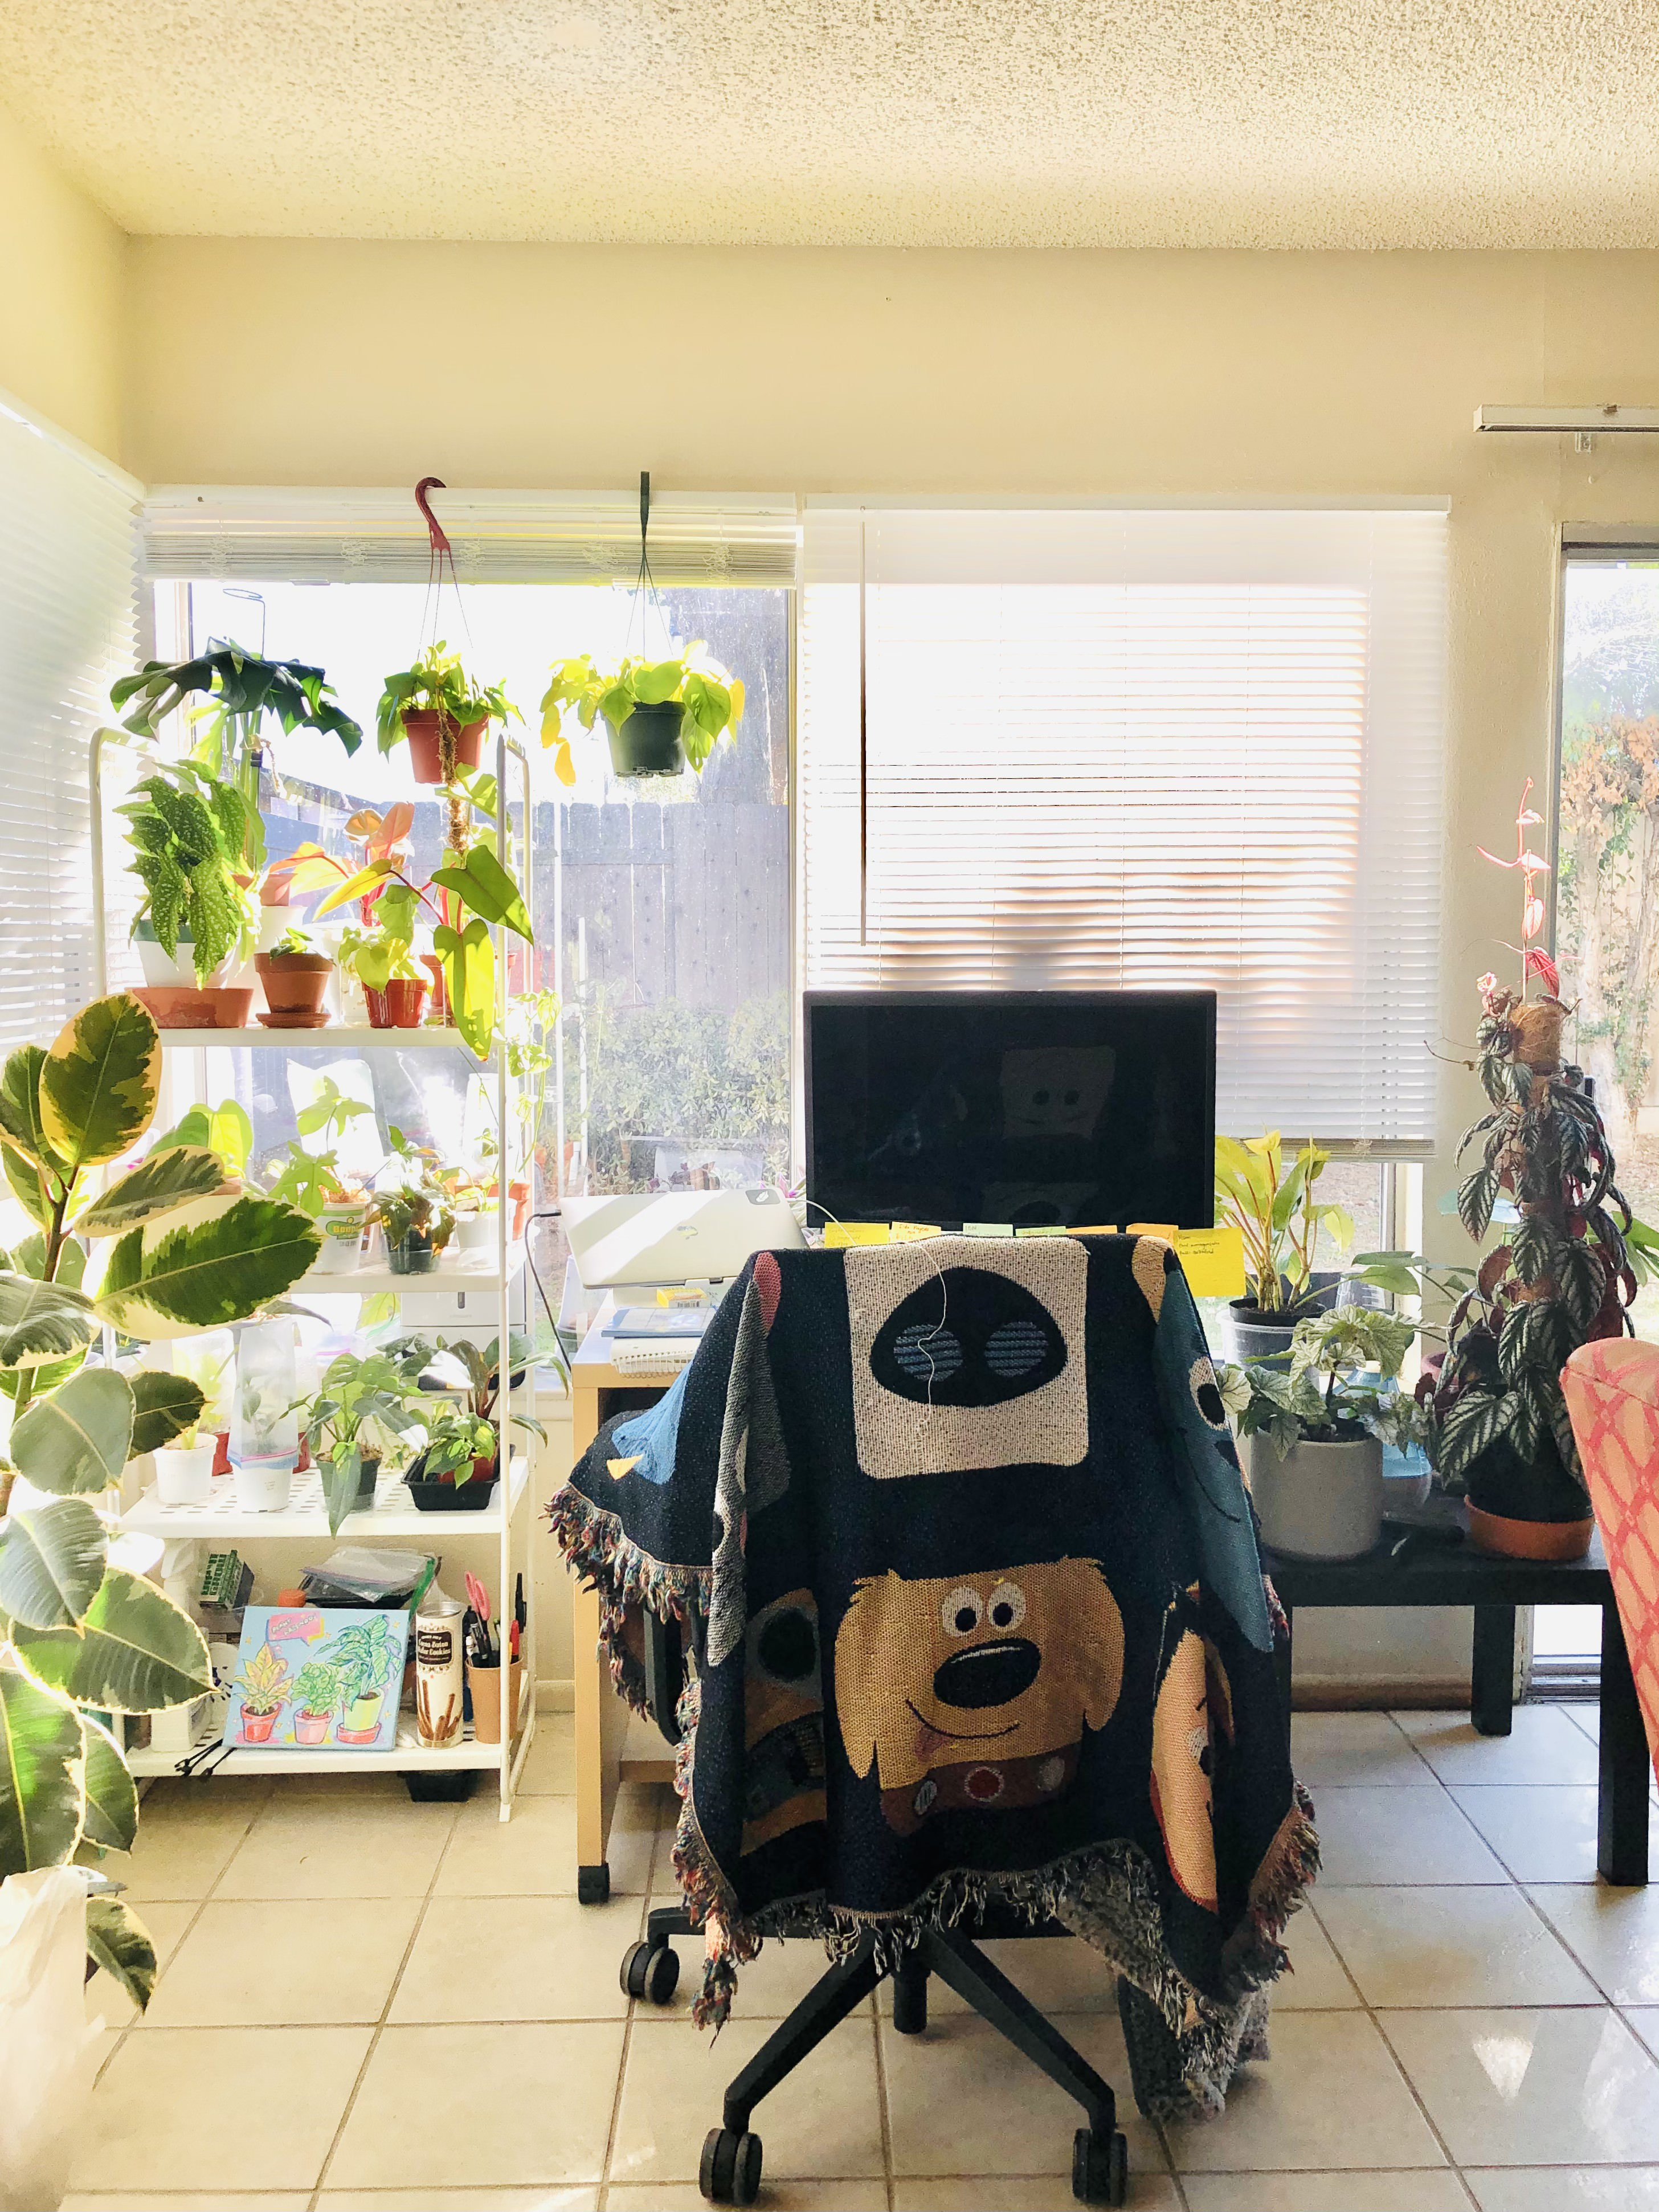 Desk with many plants